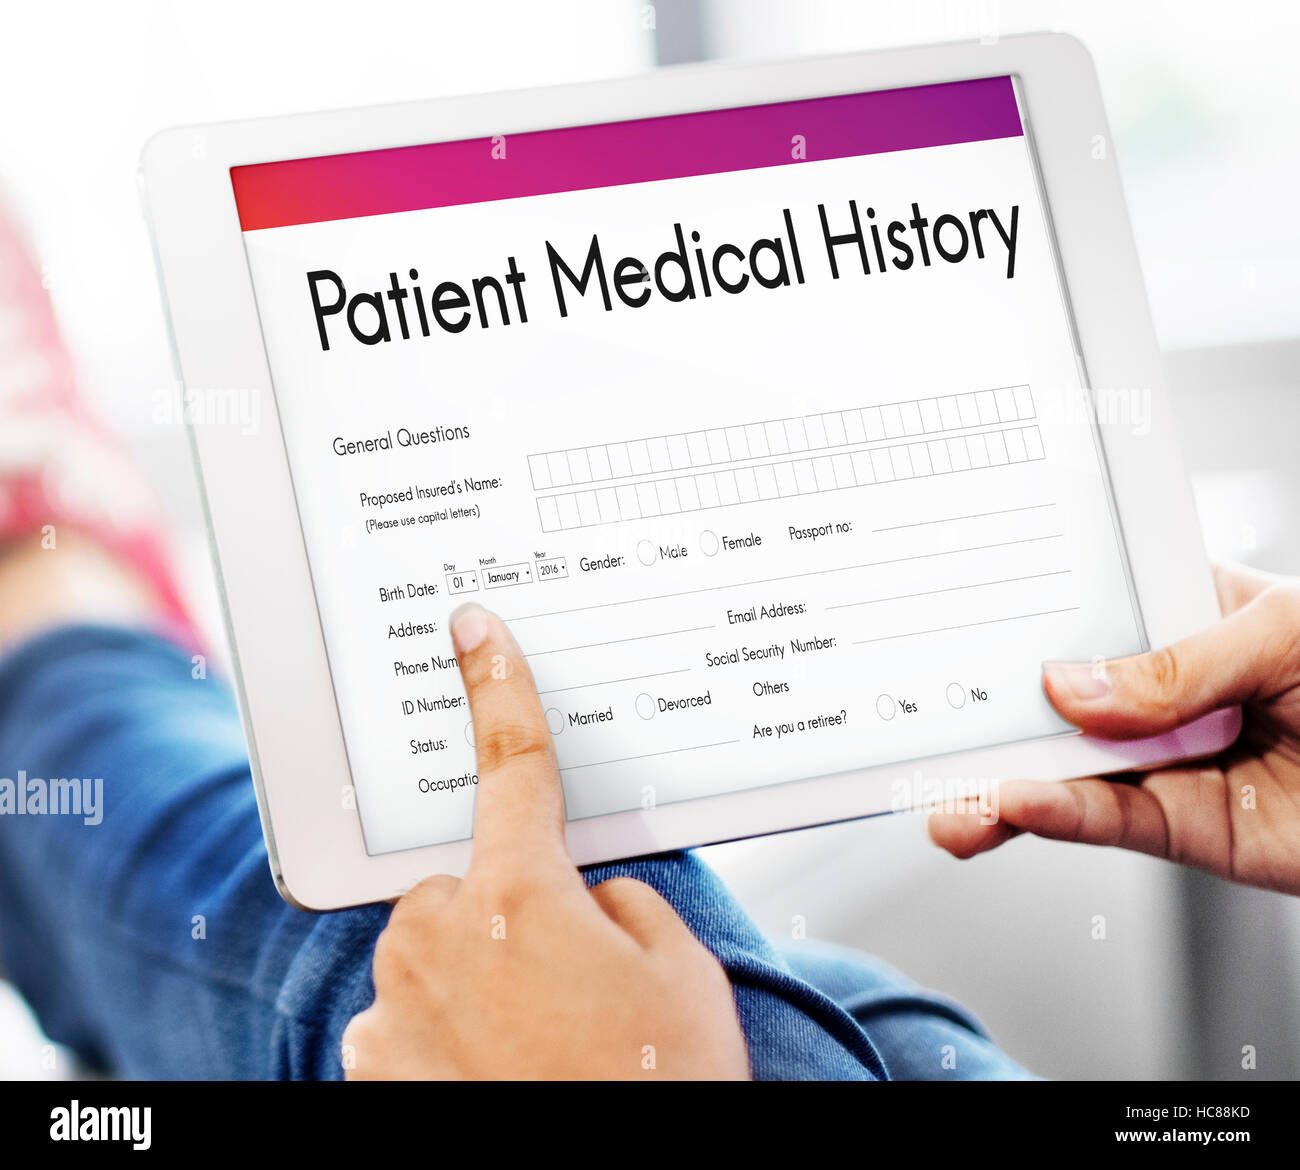 patient medical history form concept stock photo 128030881 alamy